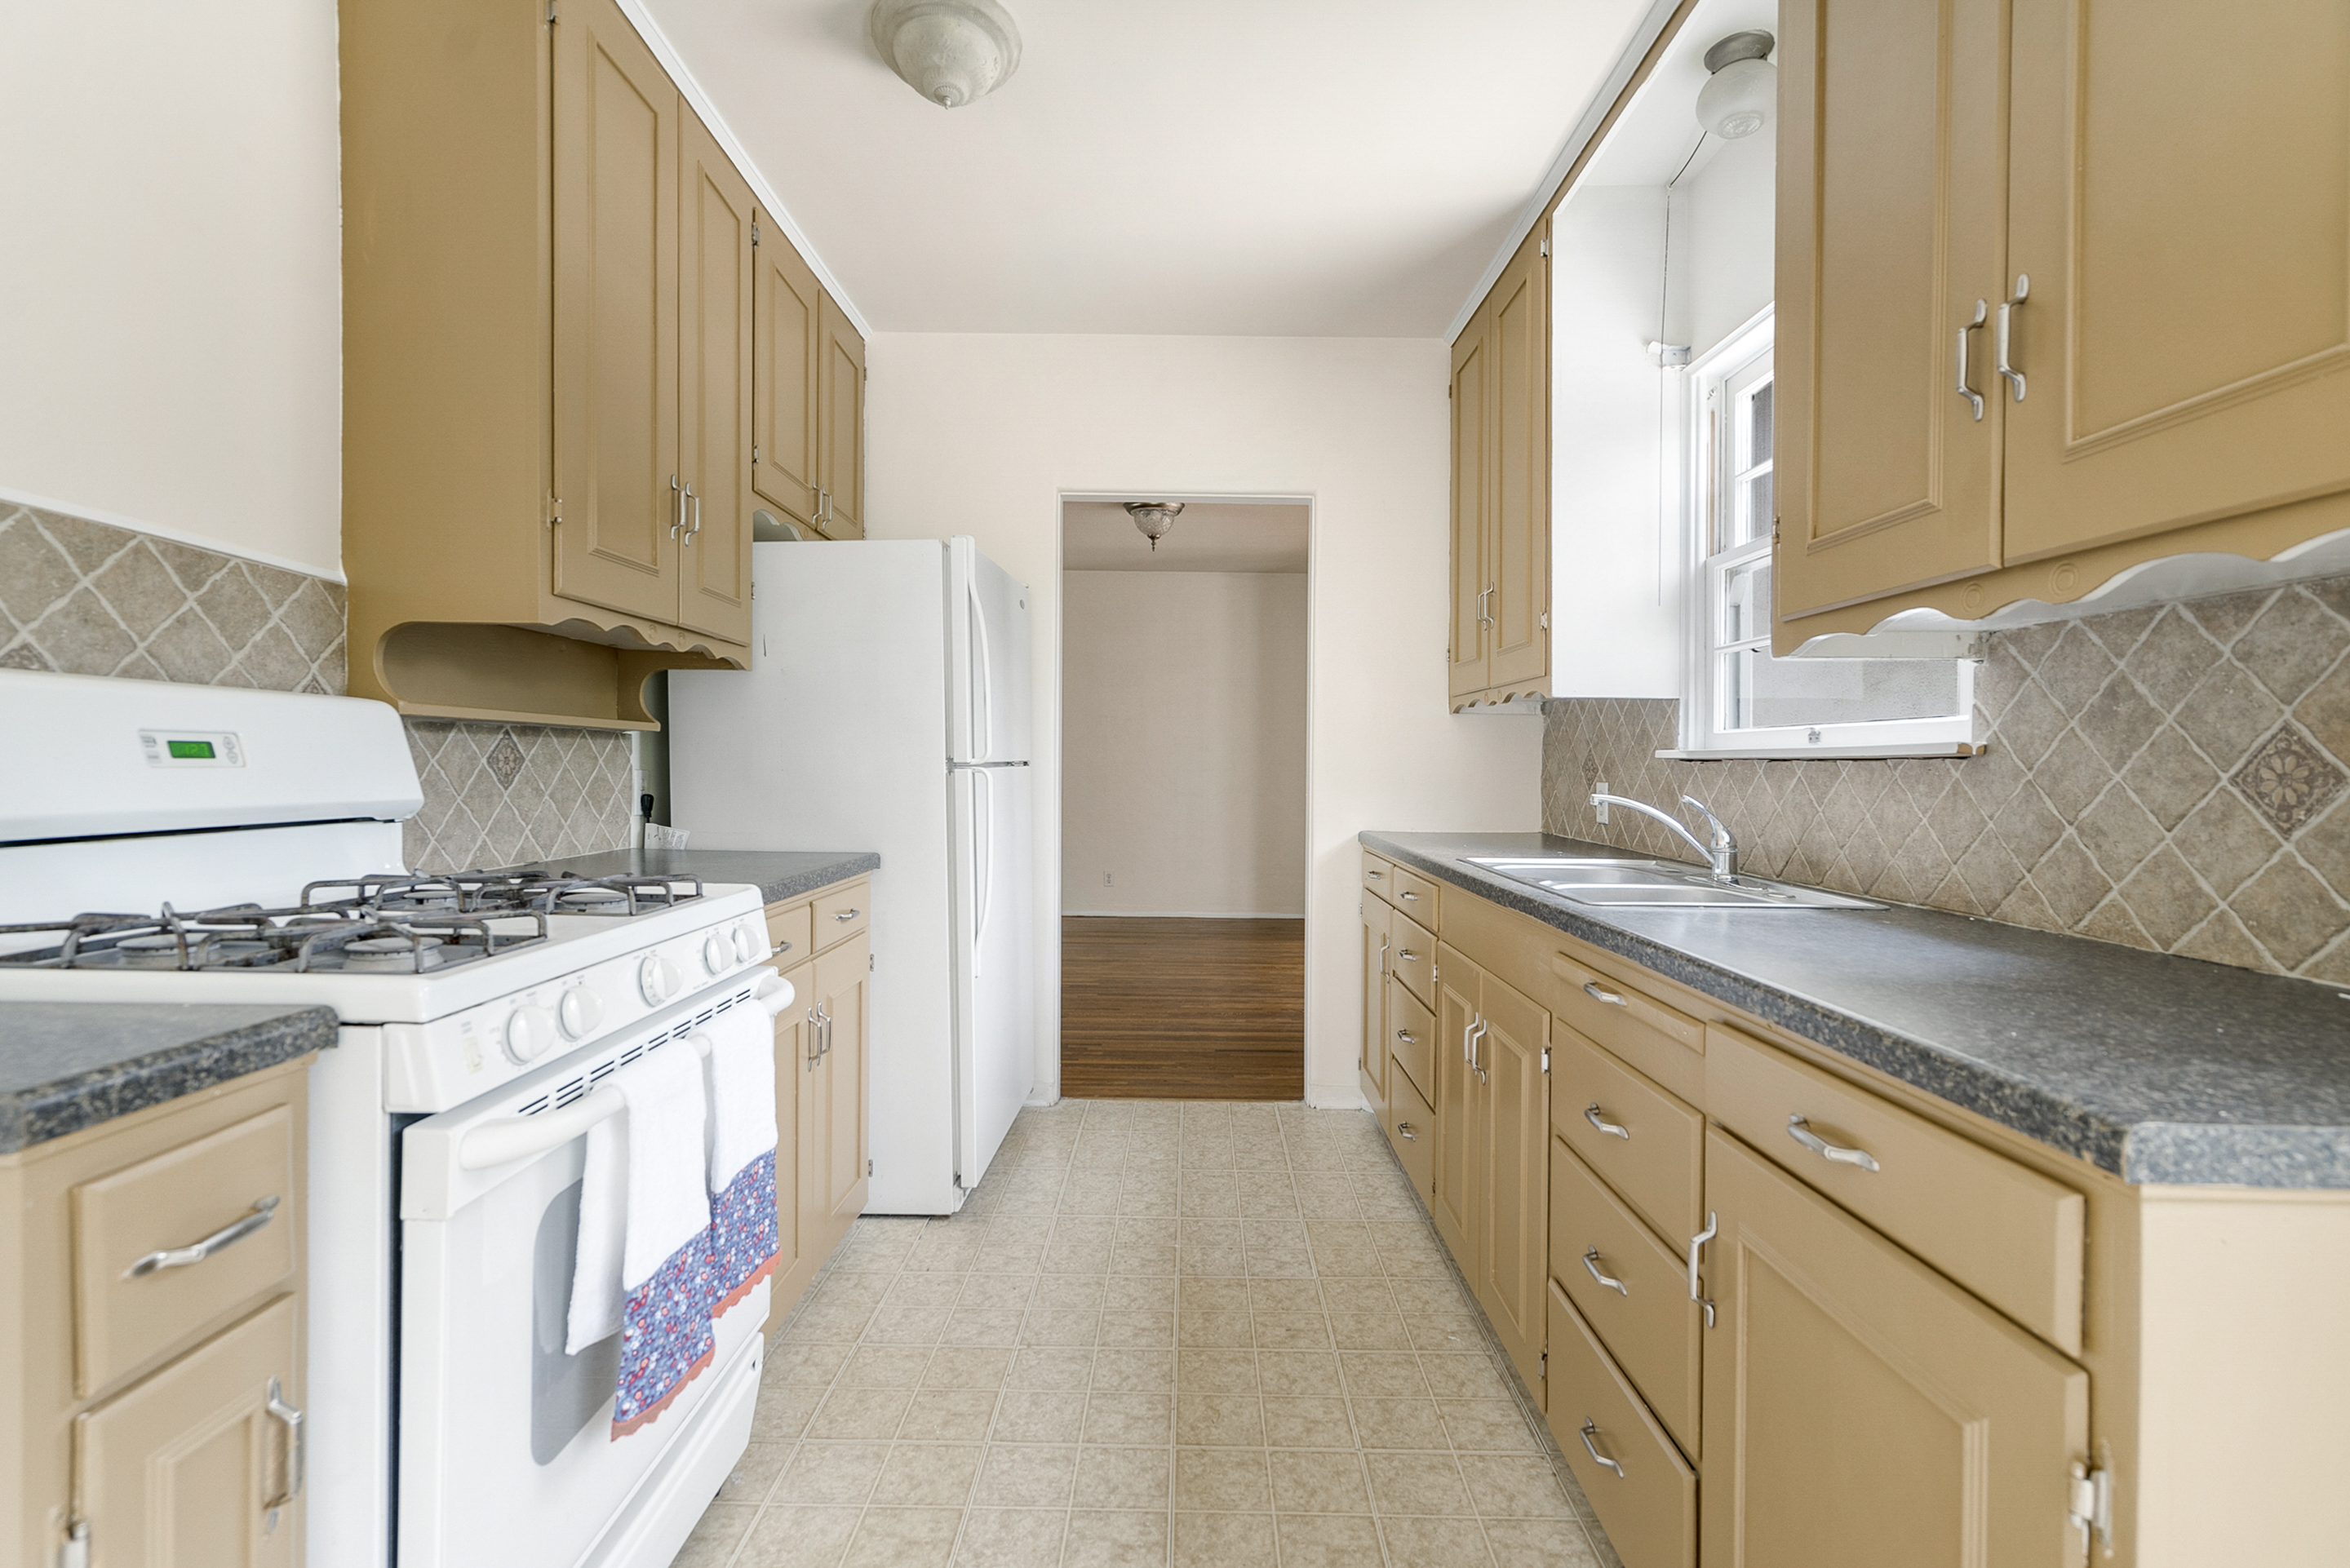 Alternate view of light and bright kitchen.